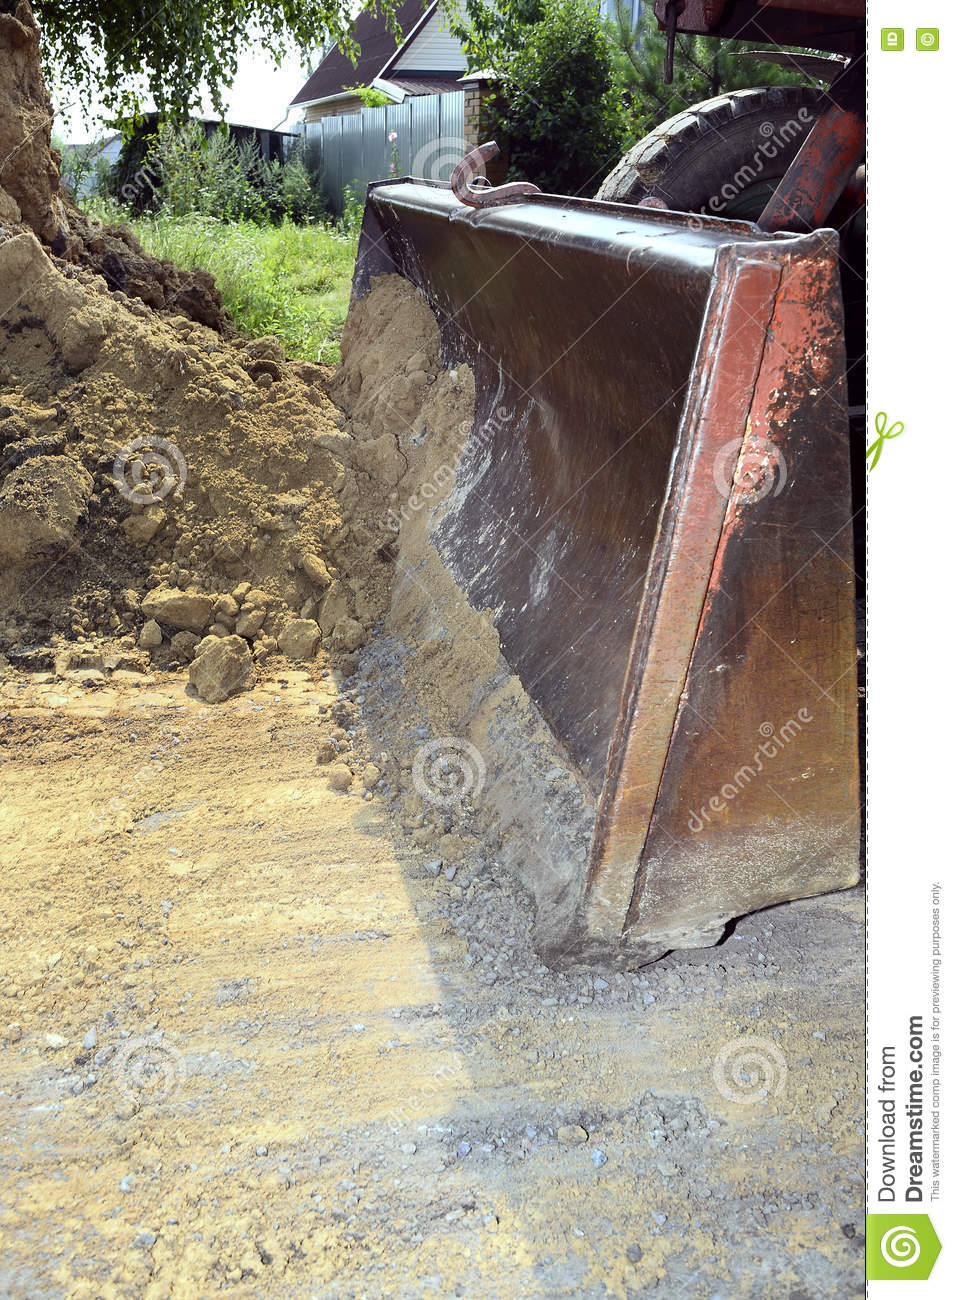 Excavator bucket digging a trench in the dirt ground stock for Digging ground dream meaning